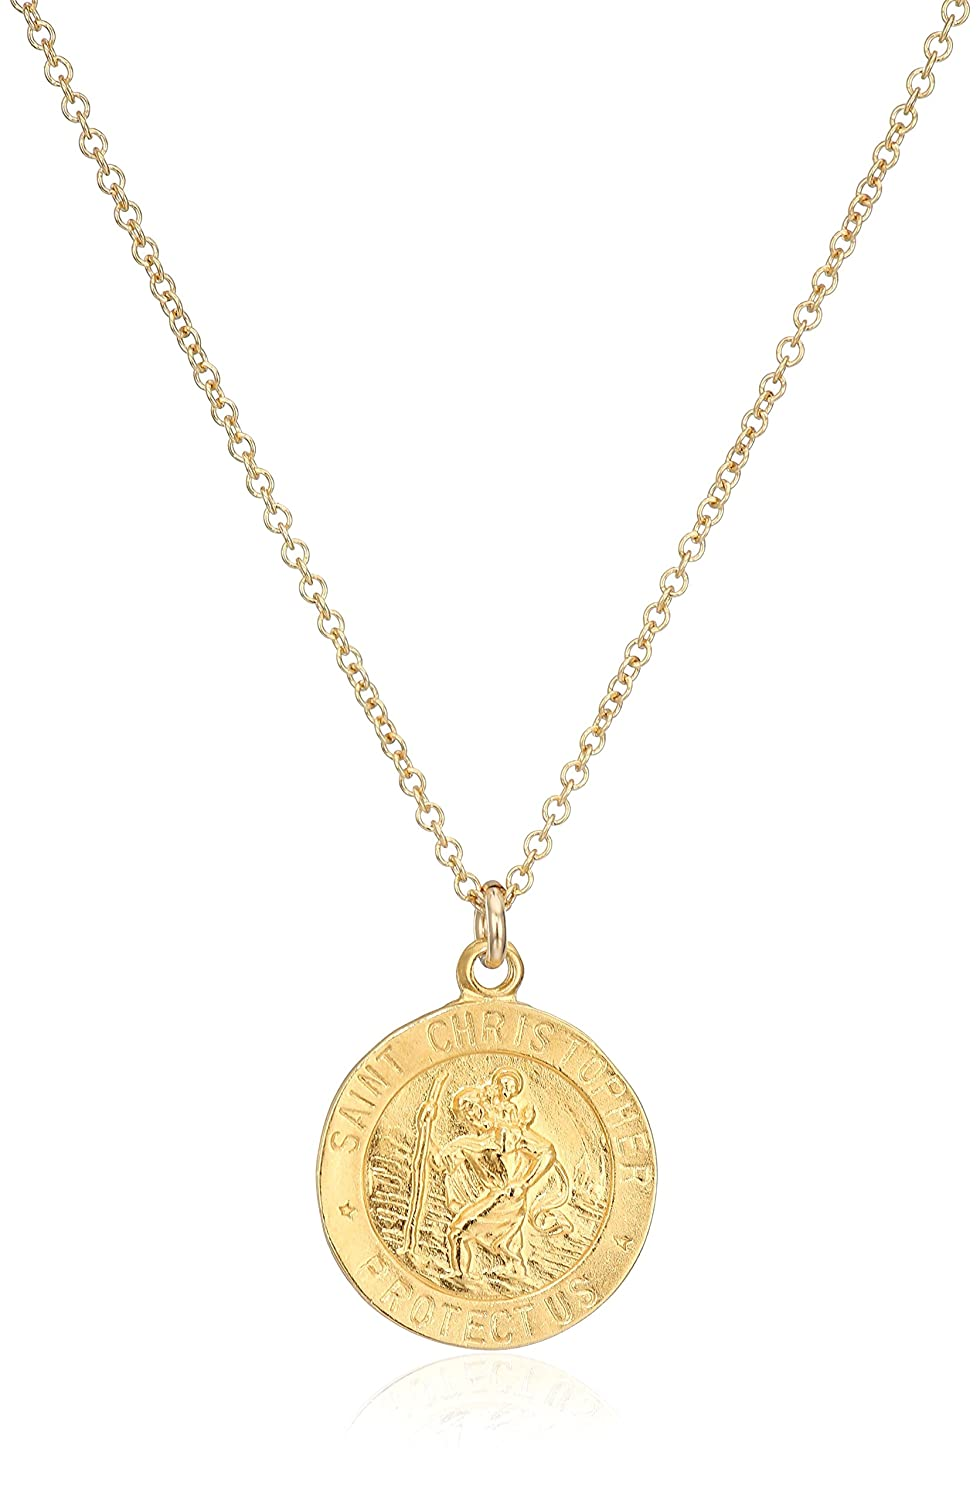 Amazon dogeared reminders saint christopher gold dipped amazon dogeared reminders saint christopher gold dipped sterling silver saint christopher disc charm necklace 162 extender jewelry aloadofball Gallery